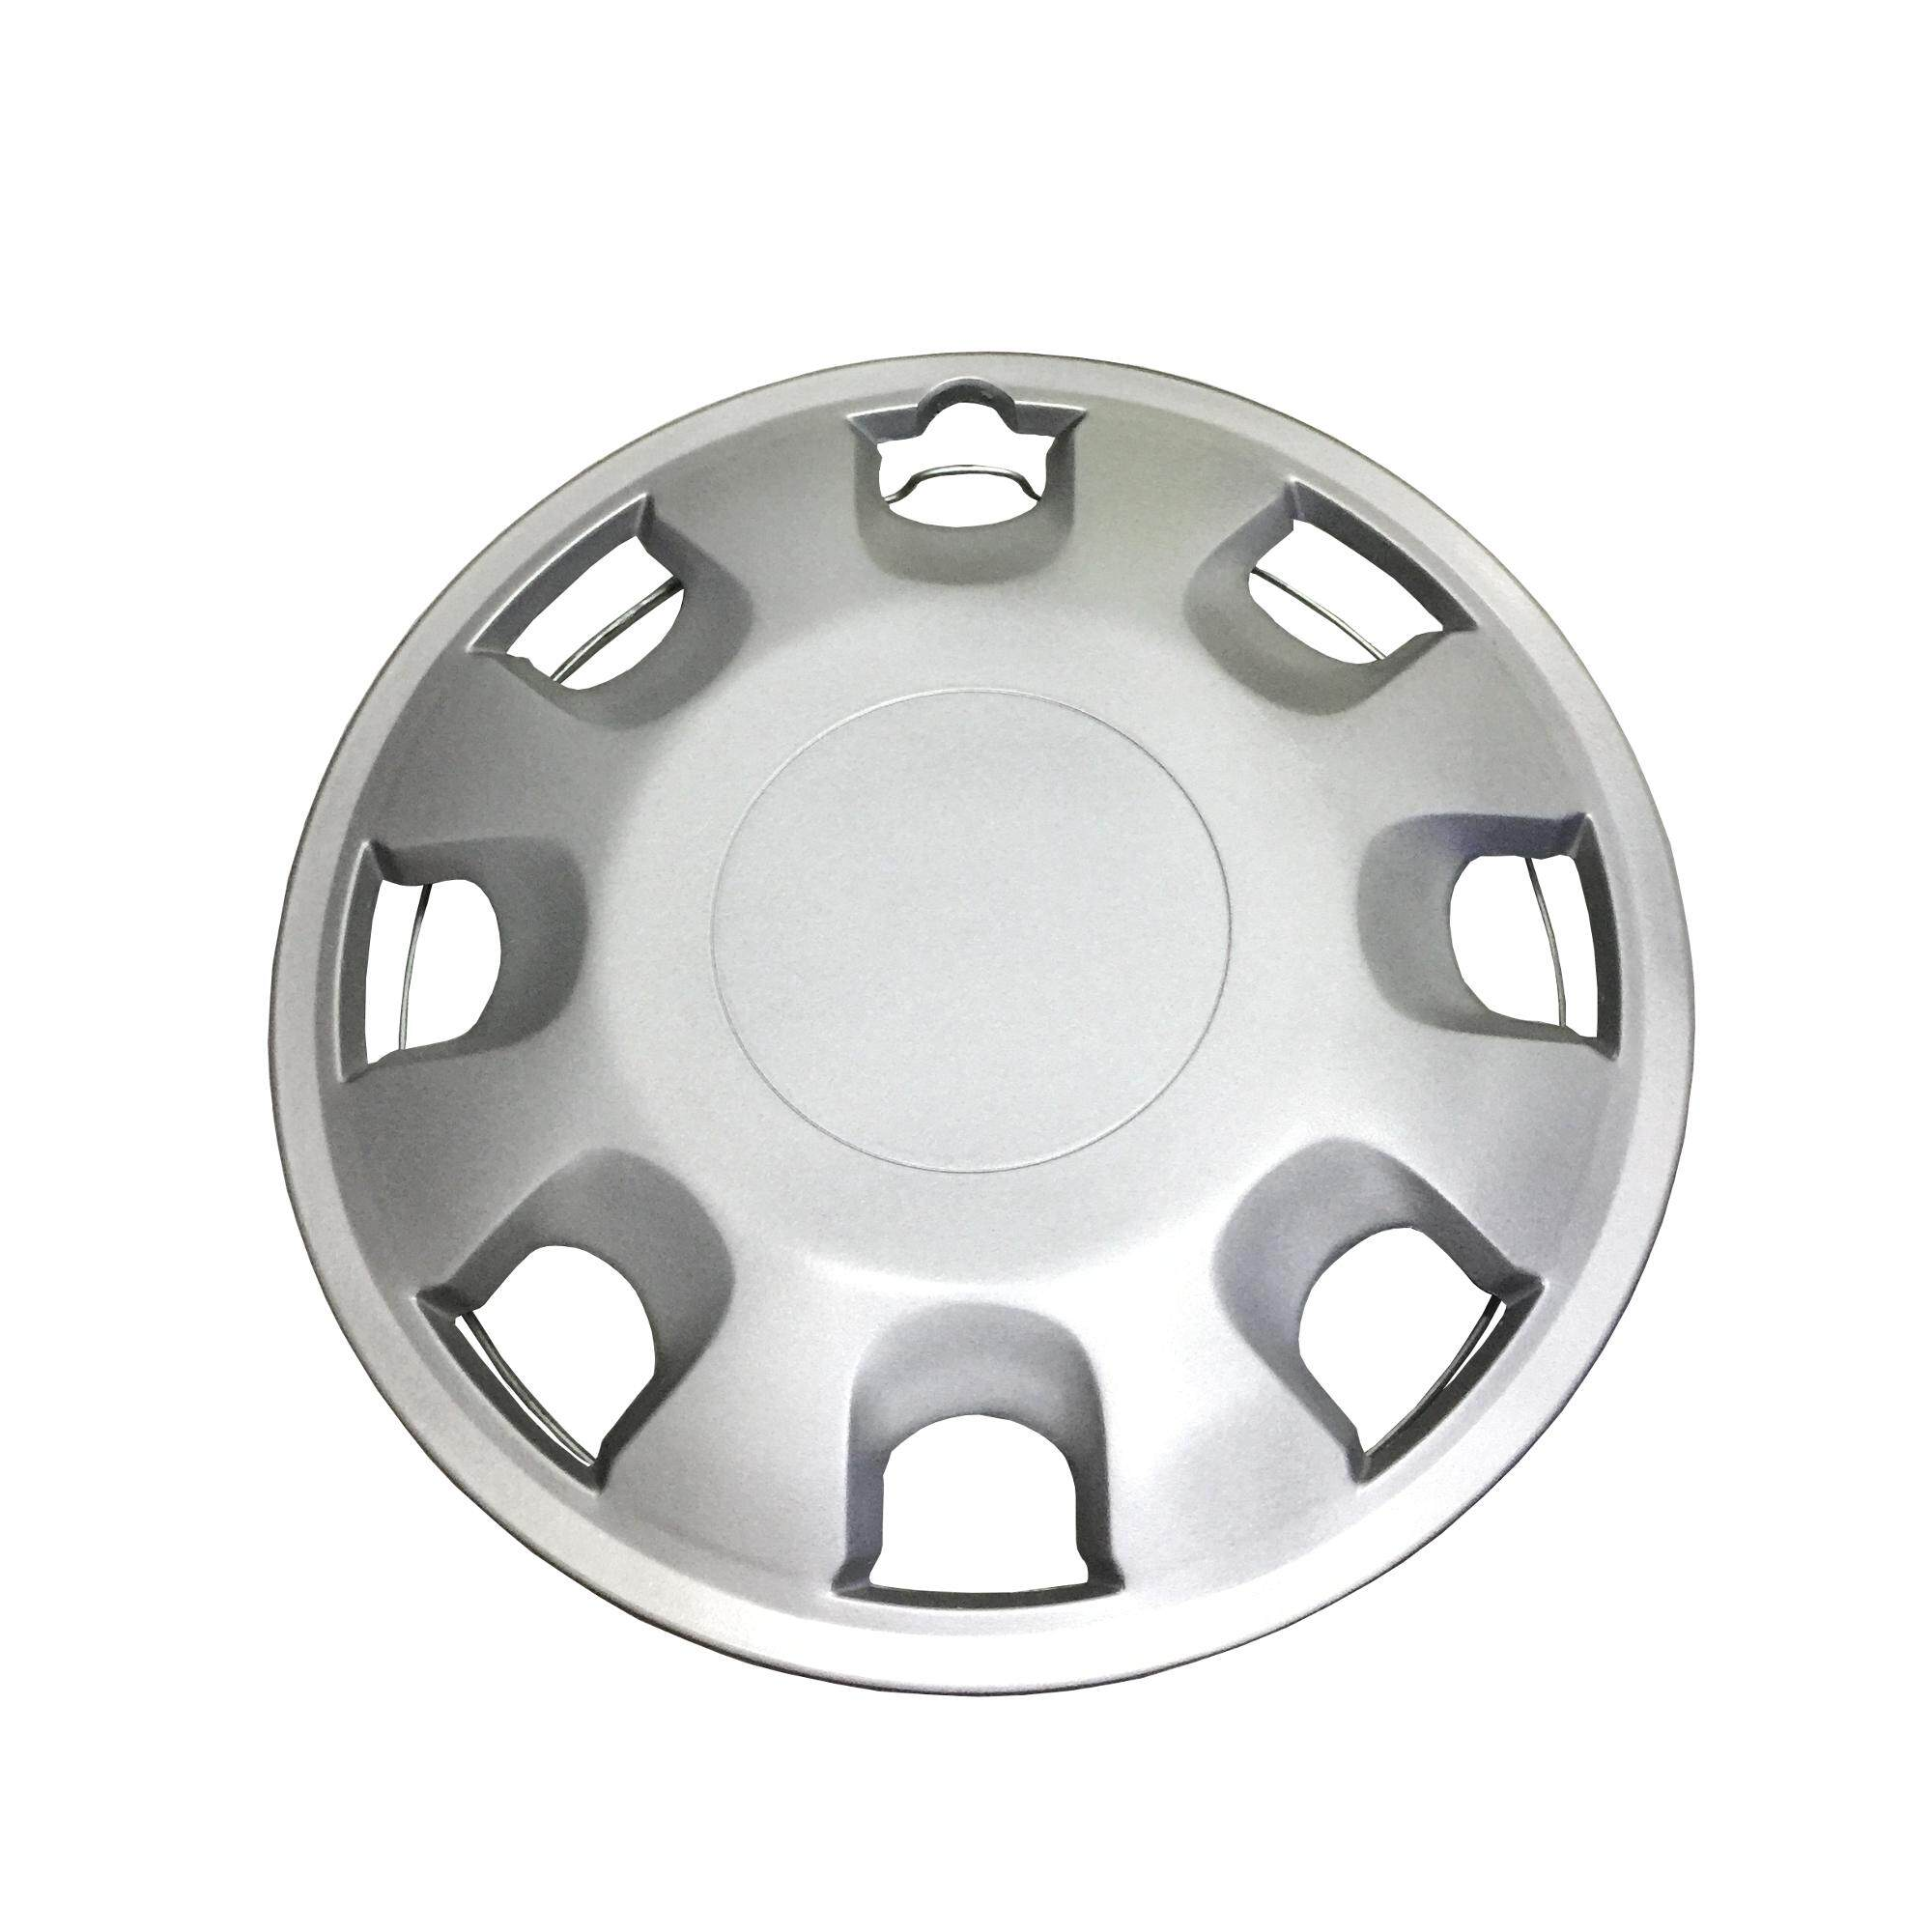 shop wheel accessories parts Buy shop wheel accessories parts at